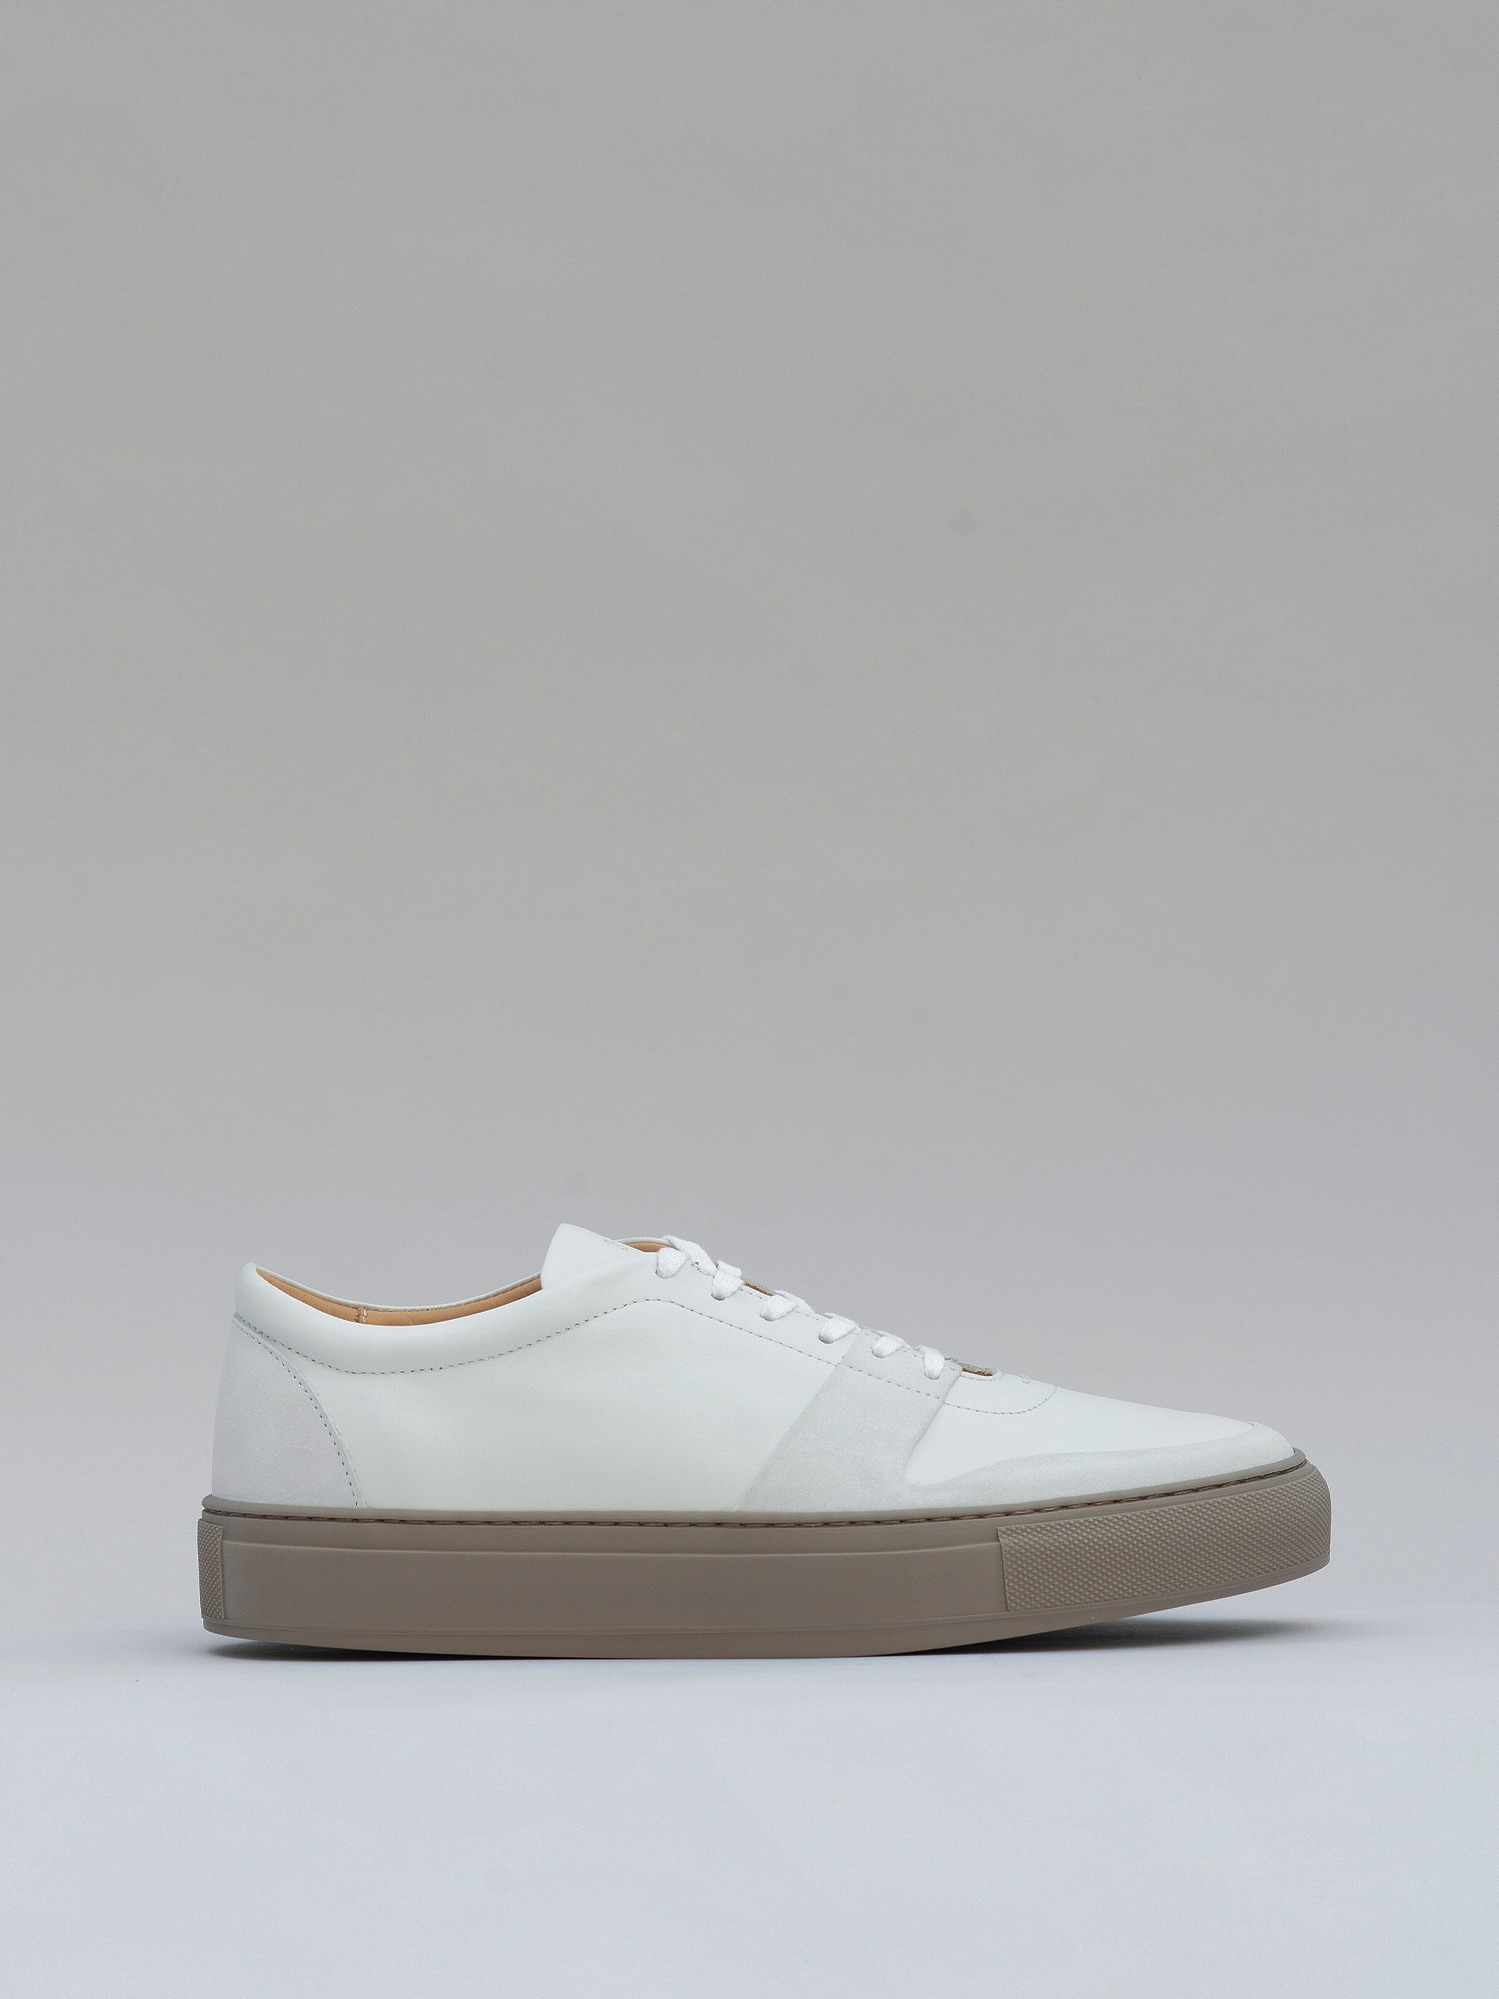 balmoral 06 nubuck/leather clay white